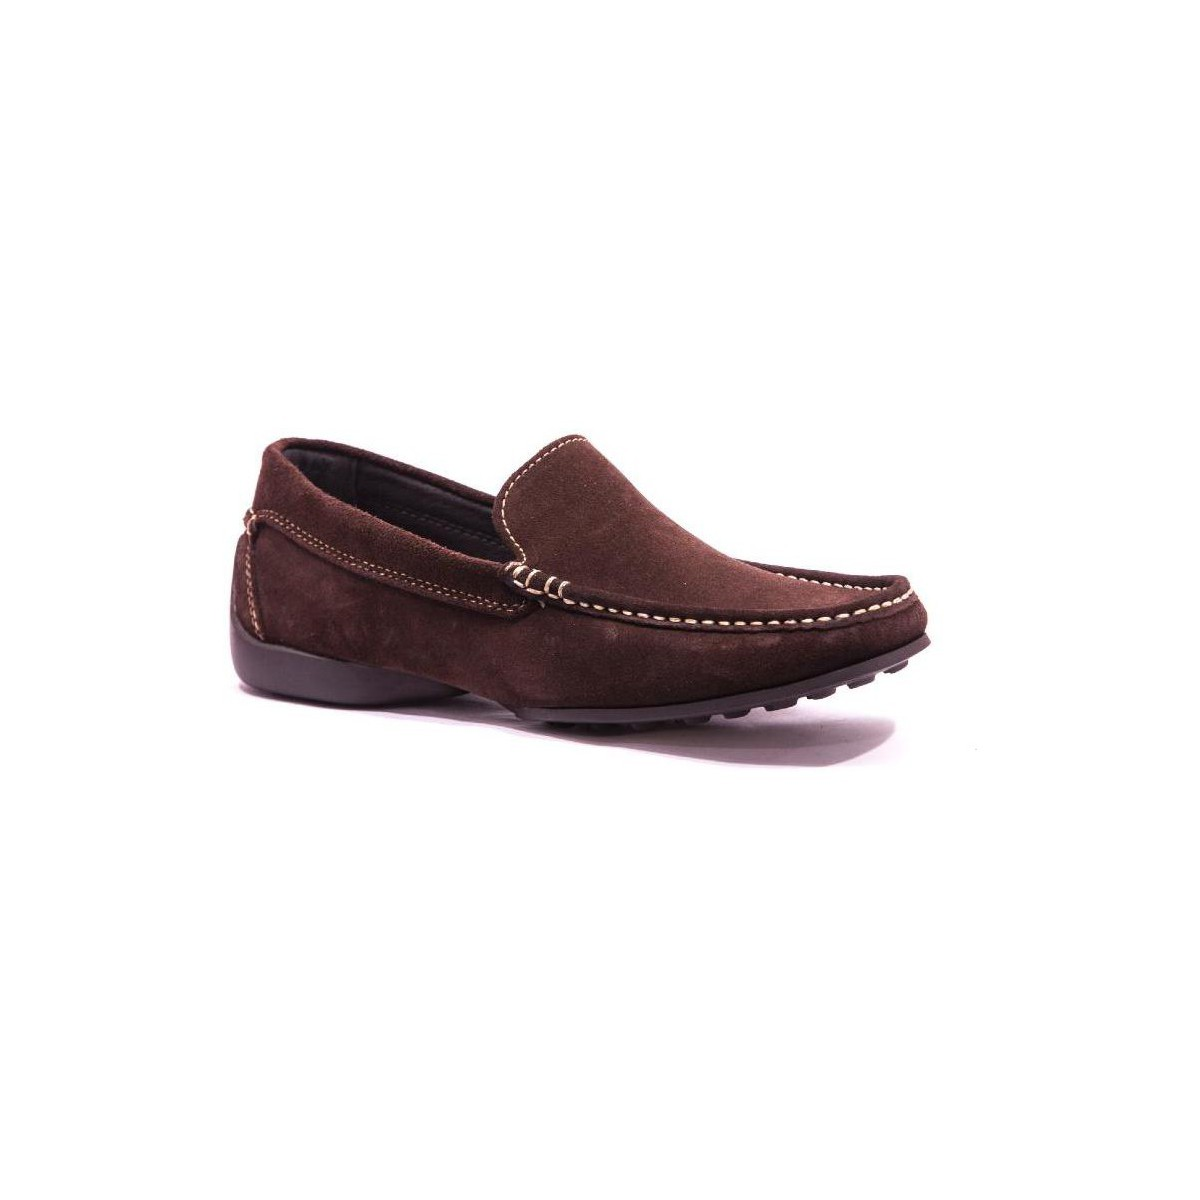 Mocassins Pratik Albert Mocassin chocolate